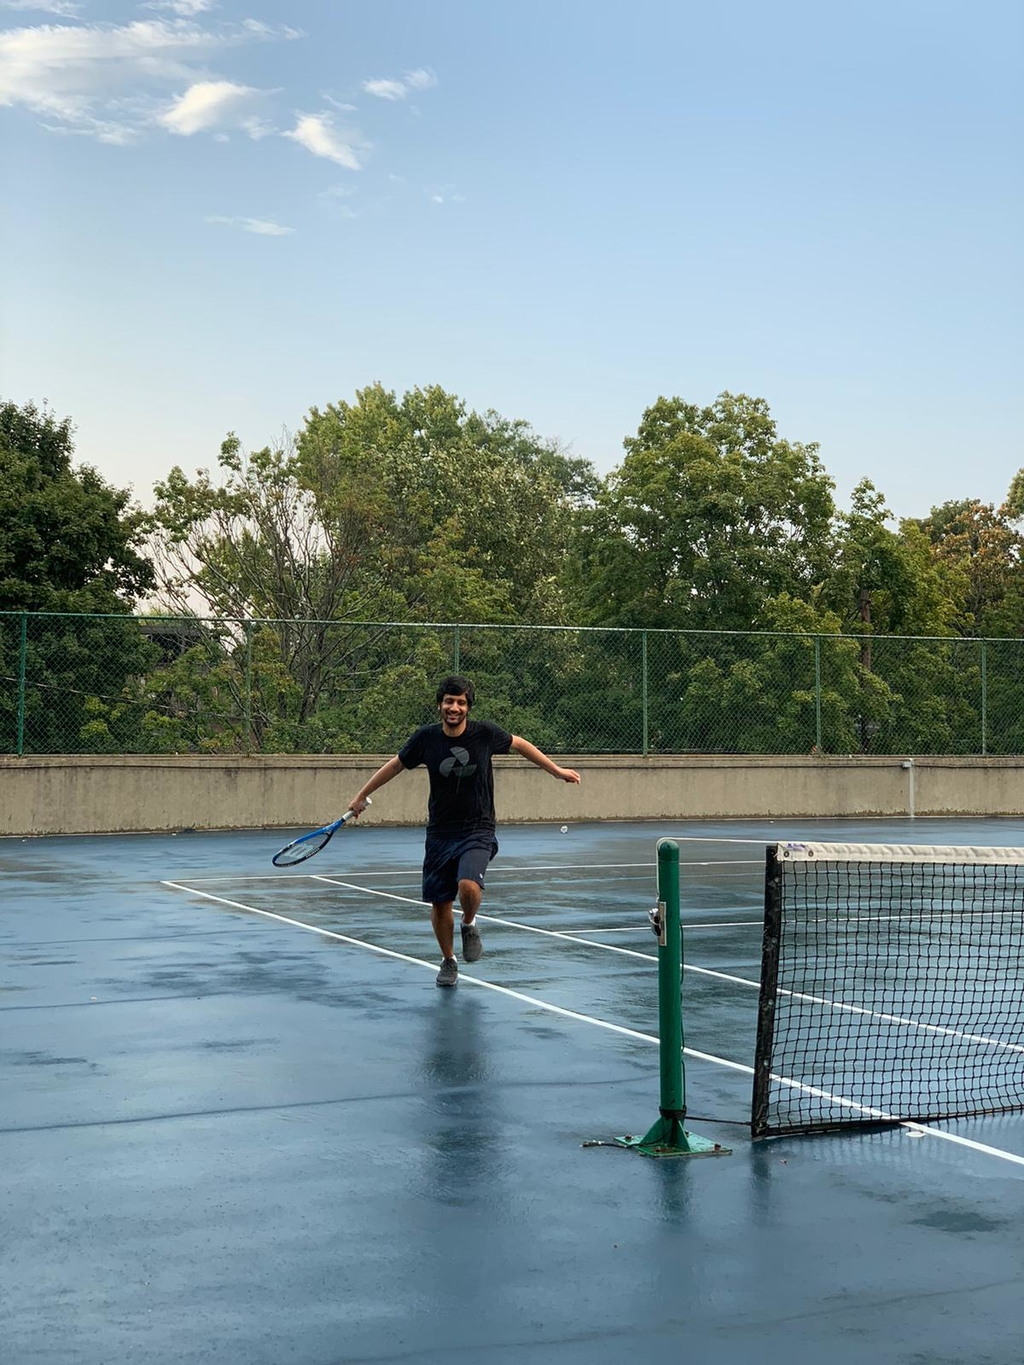 ... playing tennis, ... Summer & Spring with COVID. MemExp Blog